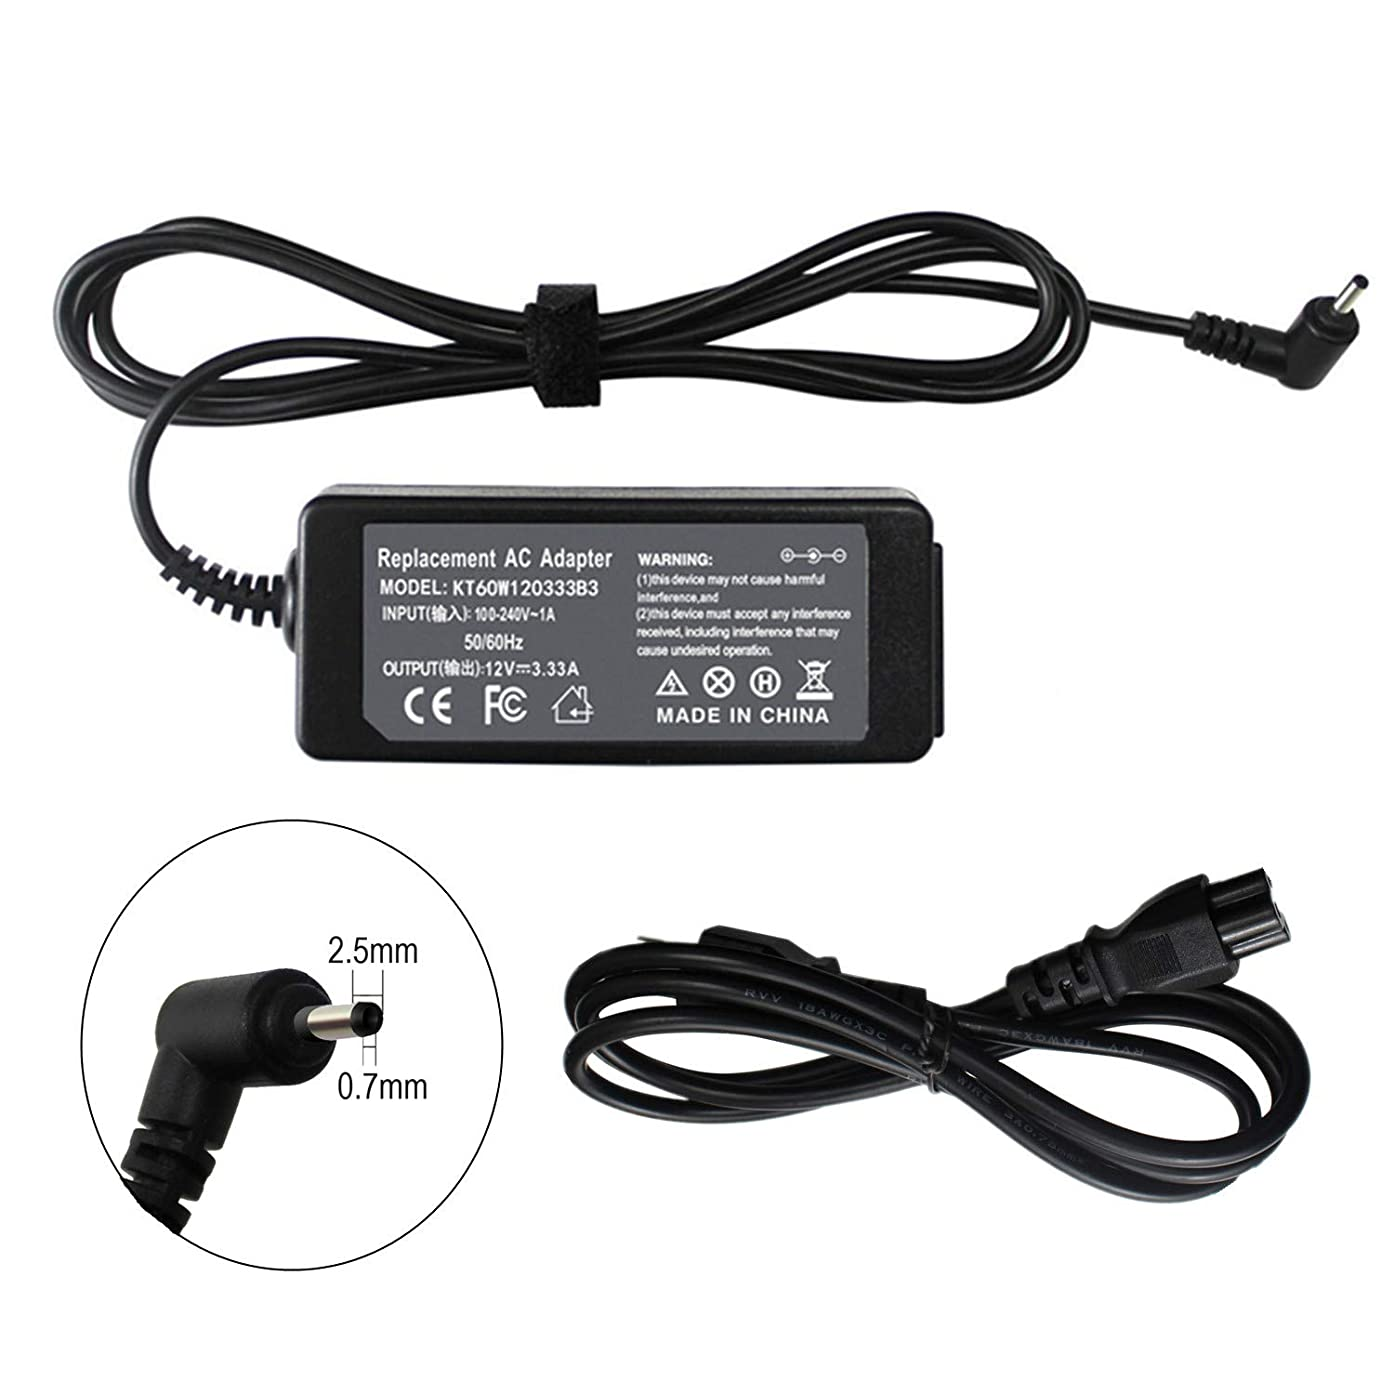 FLYTEN 26W 40W AC Adapter Charger for Samsung Chromebook 3 XE500C13 XE500C13-K01US XE500C13-K02US XE500C13-K03US XE500C13-K04US XE500C13-K05US XE500C13-S01US,fit P/N A12-040N1A AD-2612AUS BA44-00322A